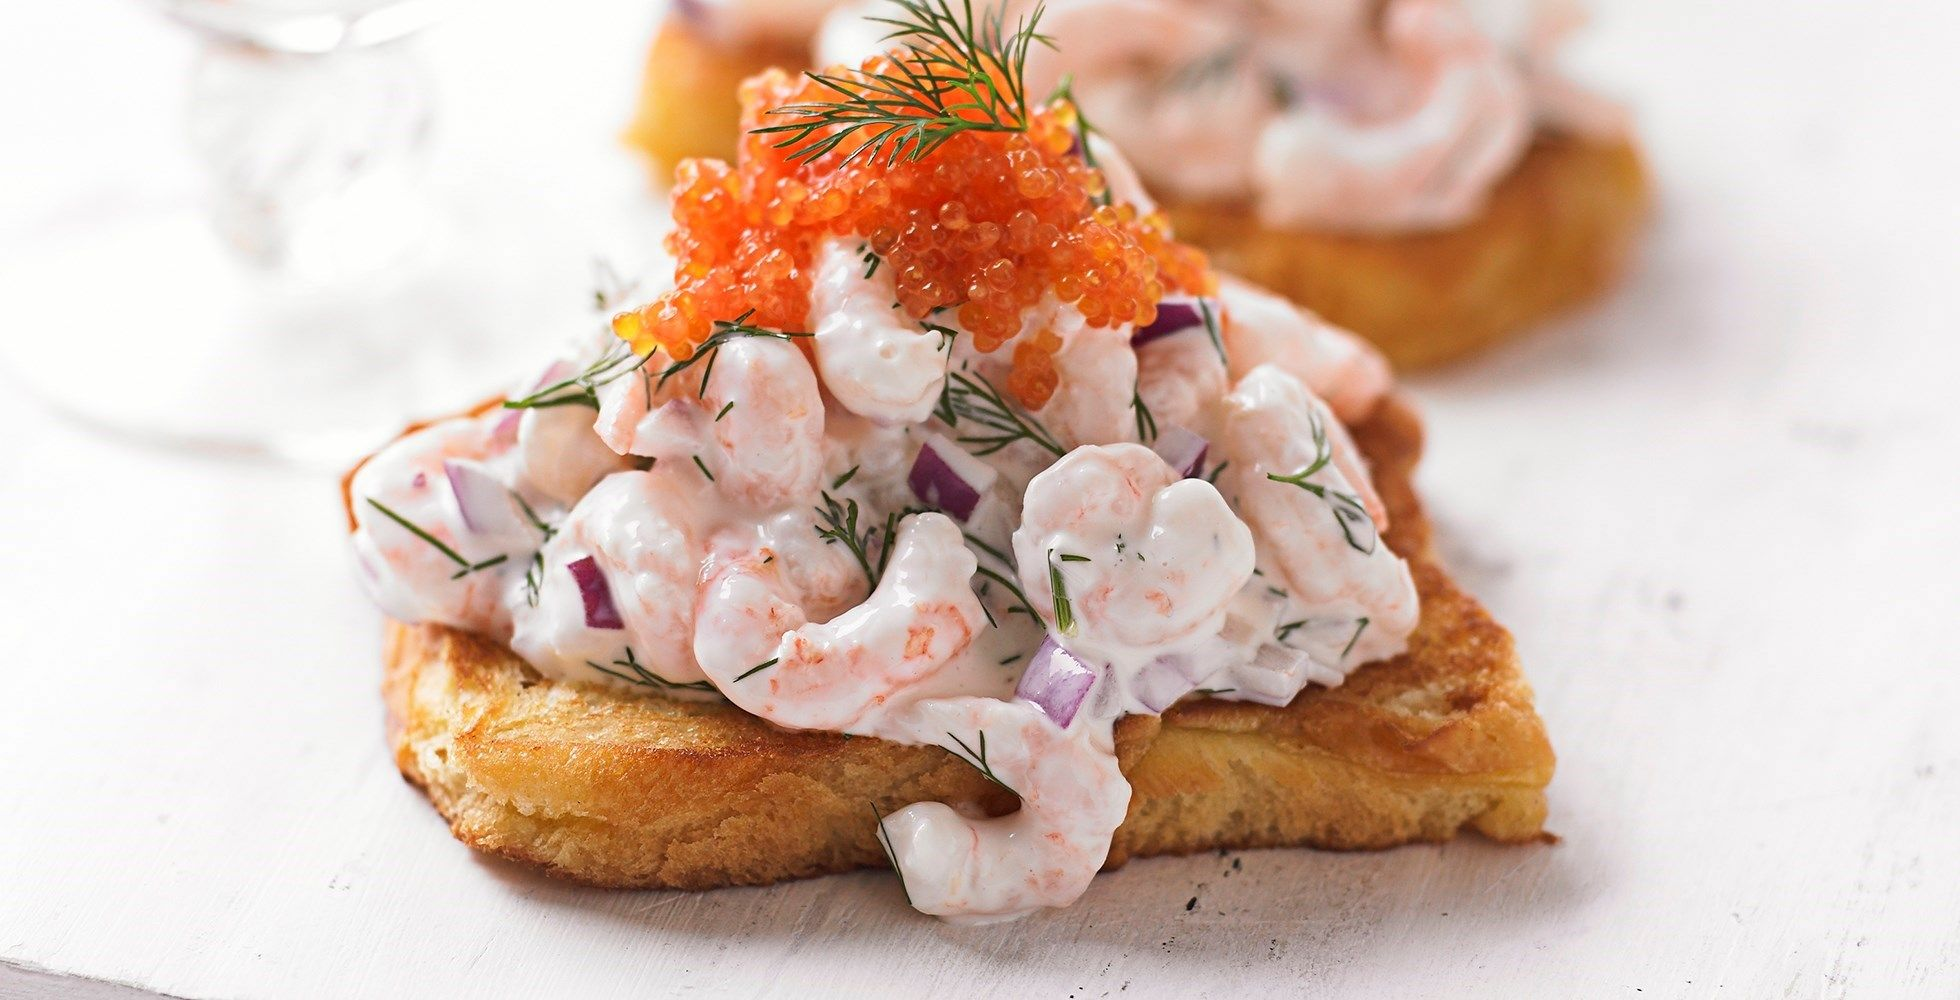 Easy Scandinavian Recipes For Midsummer Recipe Scandinavian Food Prawn Cocktail Recipes